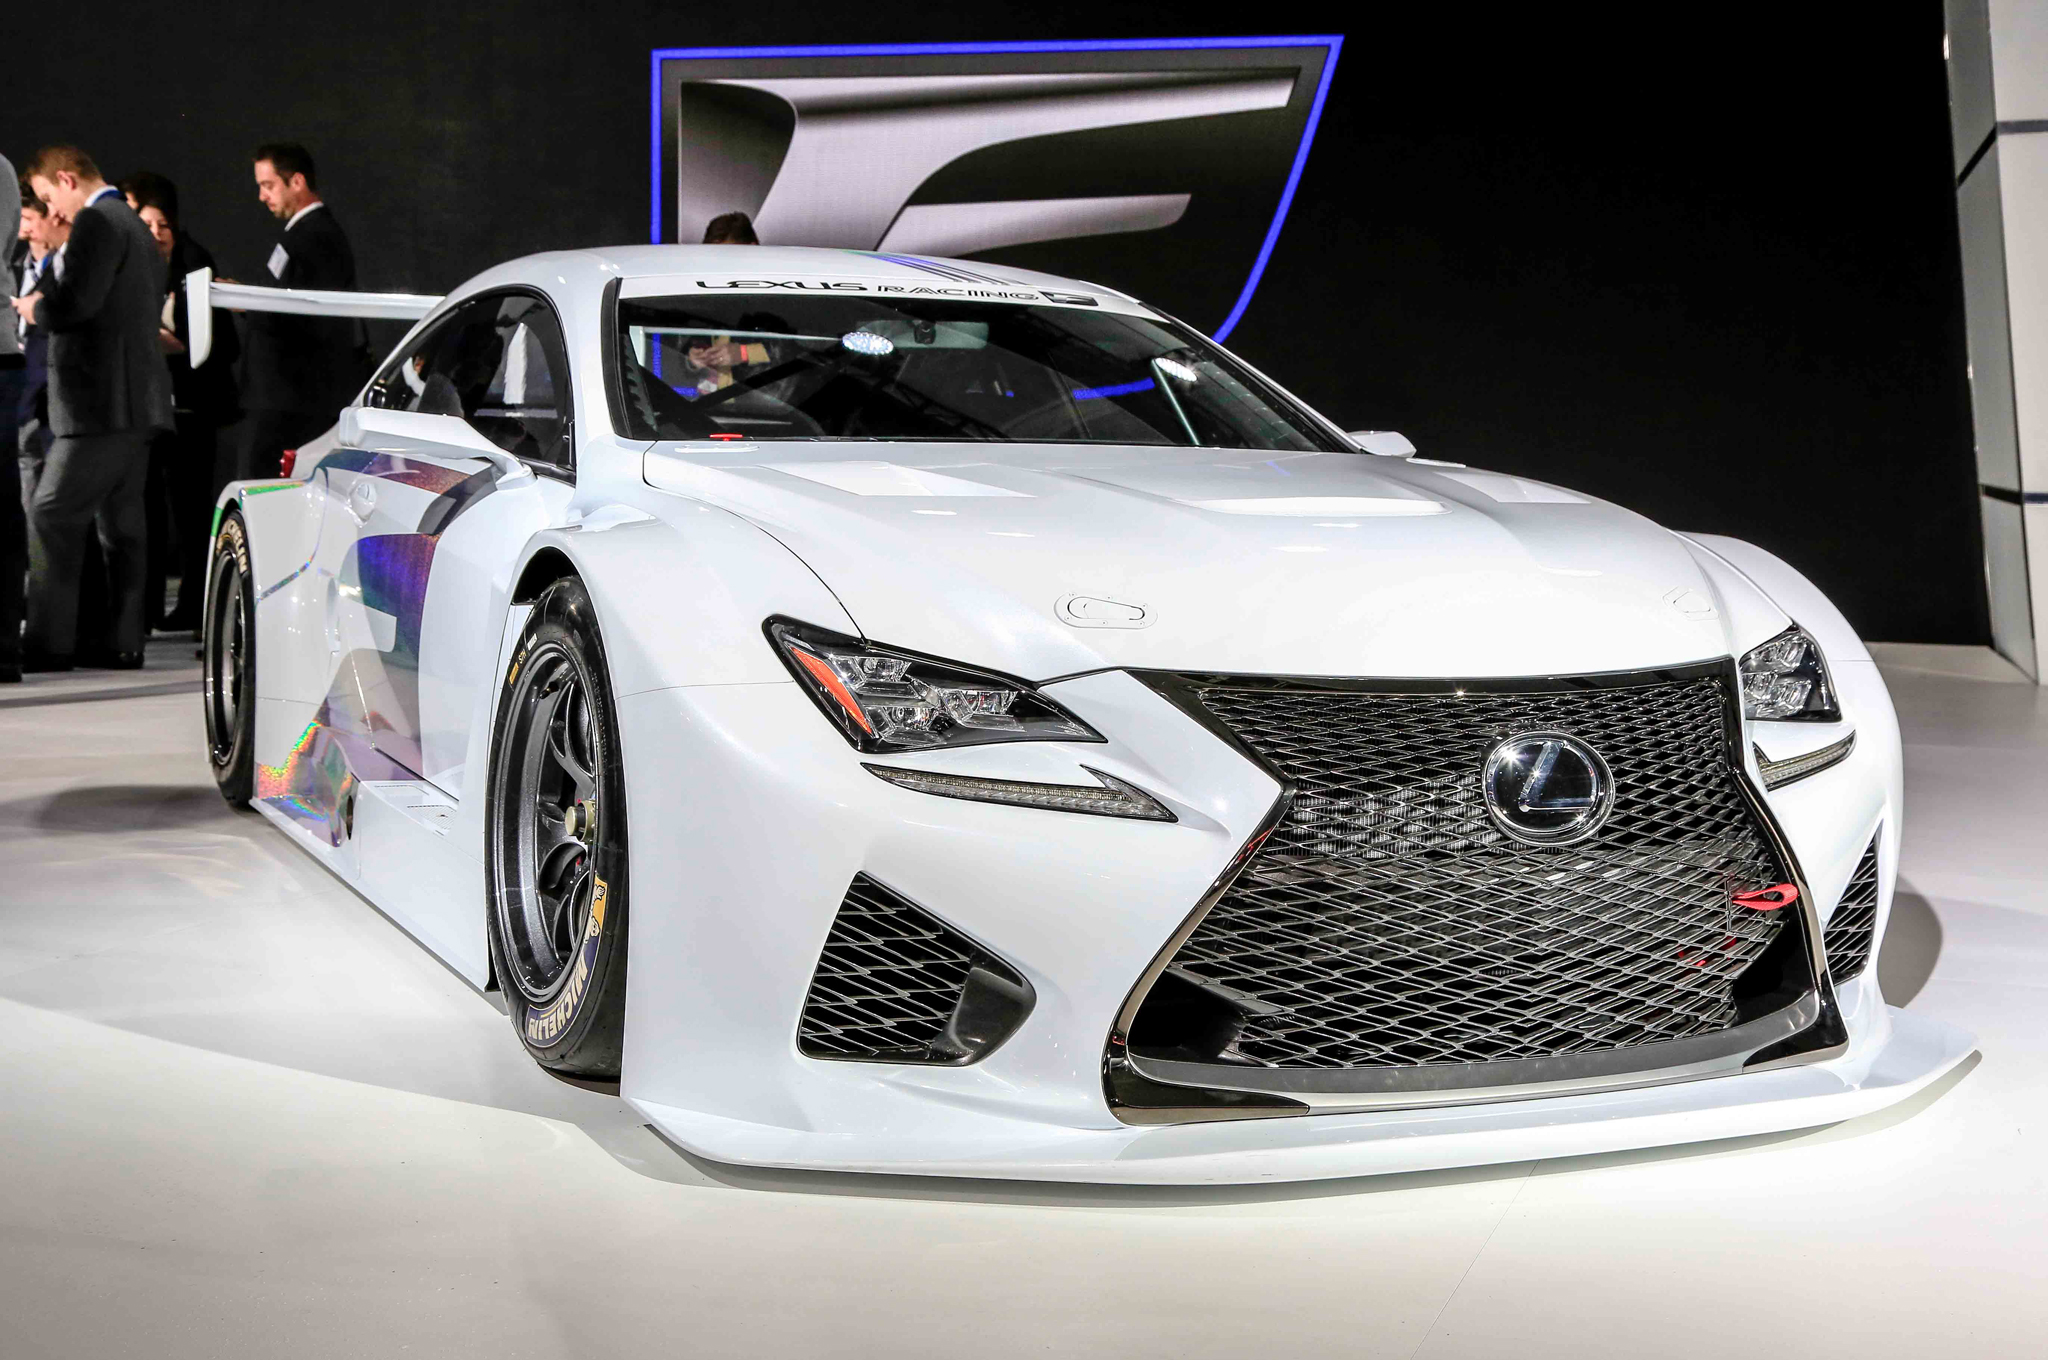 https://enthusiastnetwork.s3.amazonaws.com/uploads/sites/5/2015/01/Lexus-RC-F-GT3-race-car-concept-front-end.jpg?impolicy=entryimage